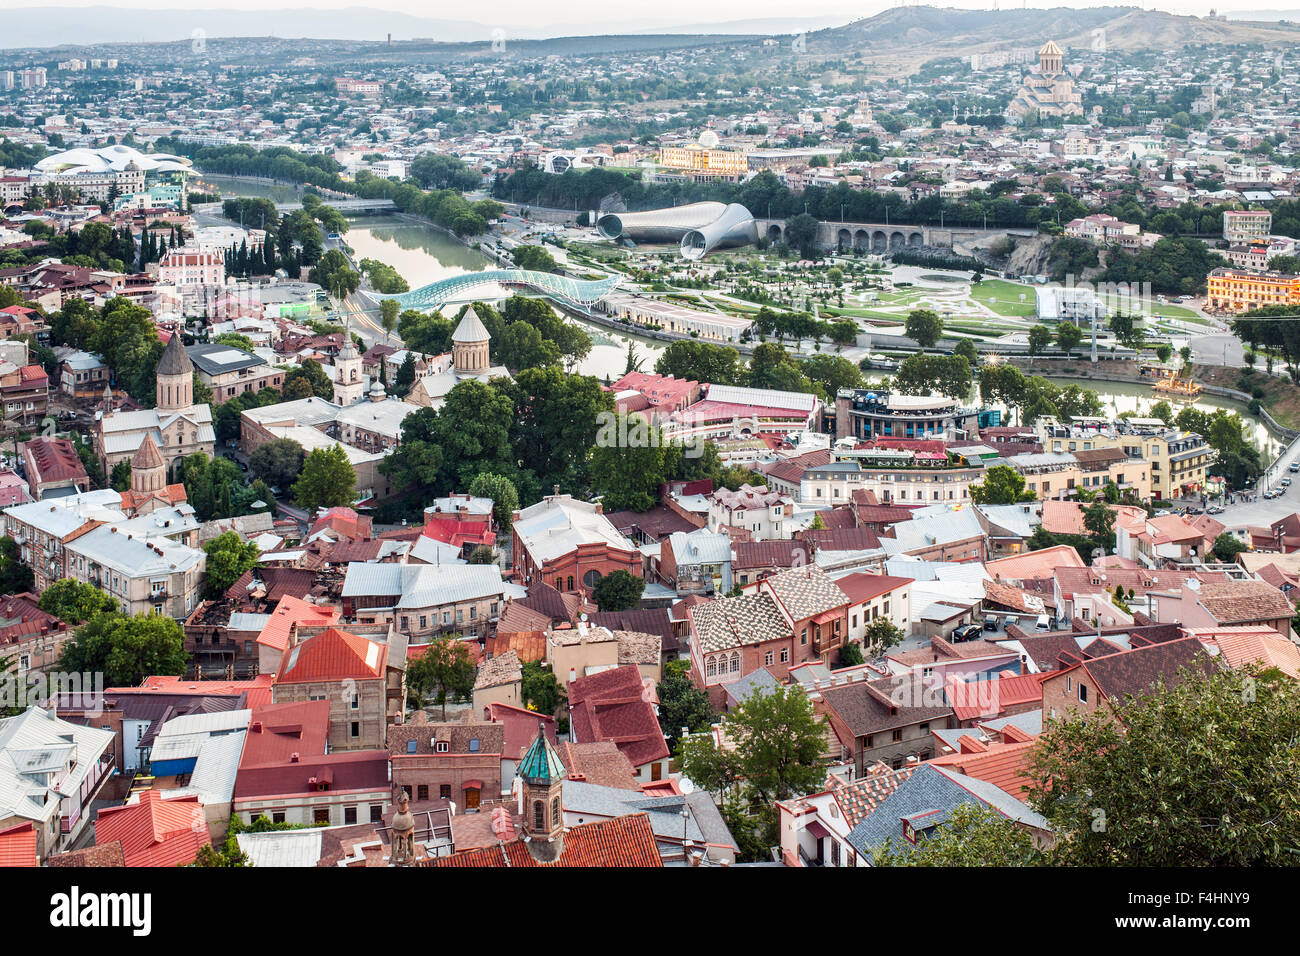 Dawn view over the old town and Mtkvari River in Tbilisi, the capital of Georgia. Stock Photo